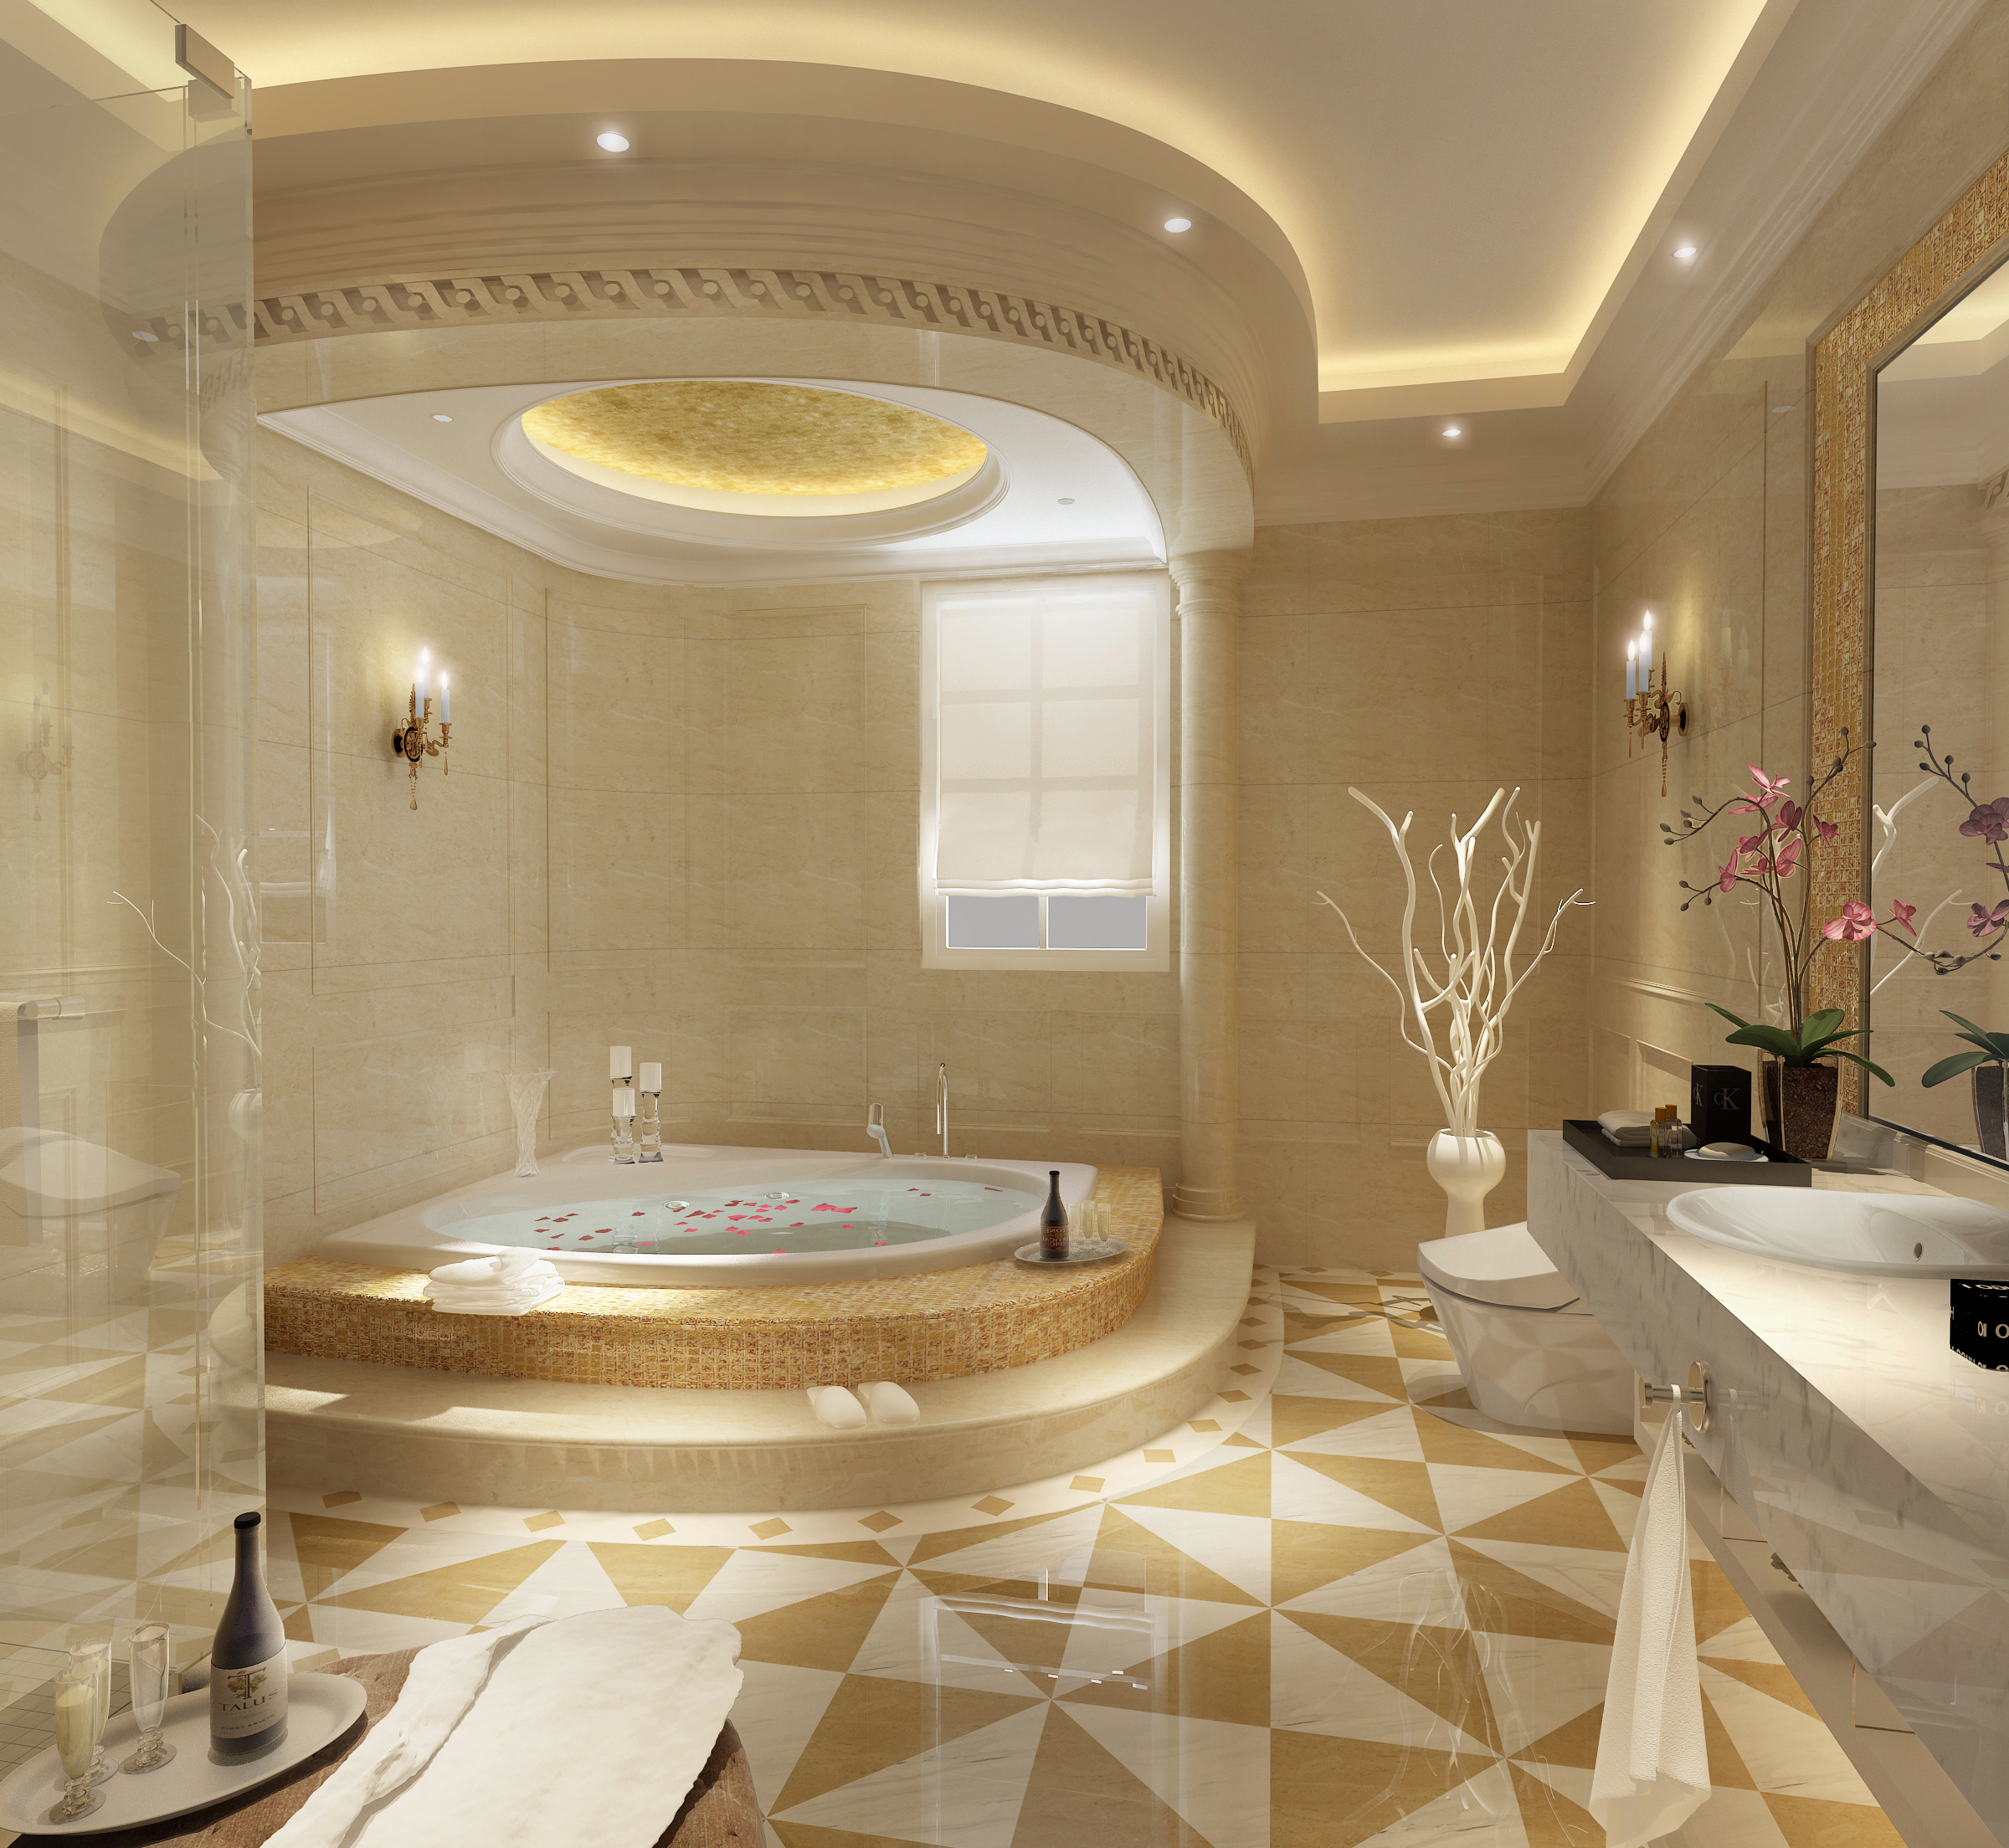 Luxurious Bathroom With Big Bath 3d Model Max 1